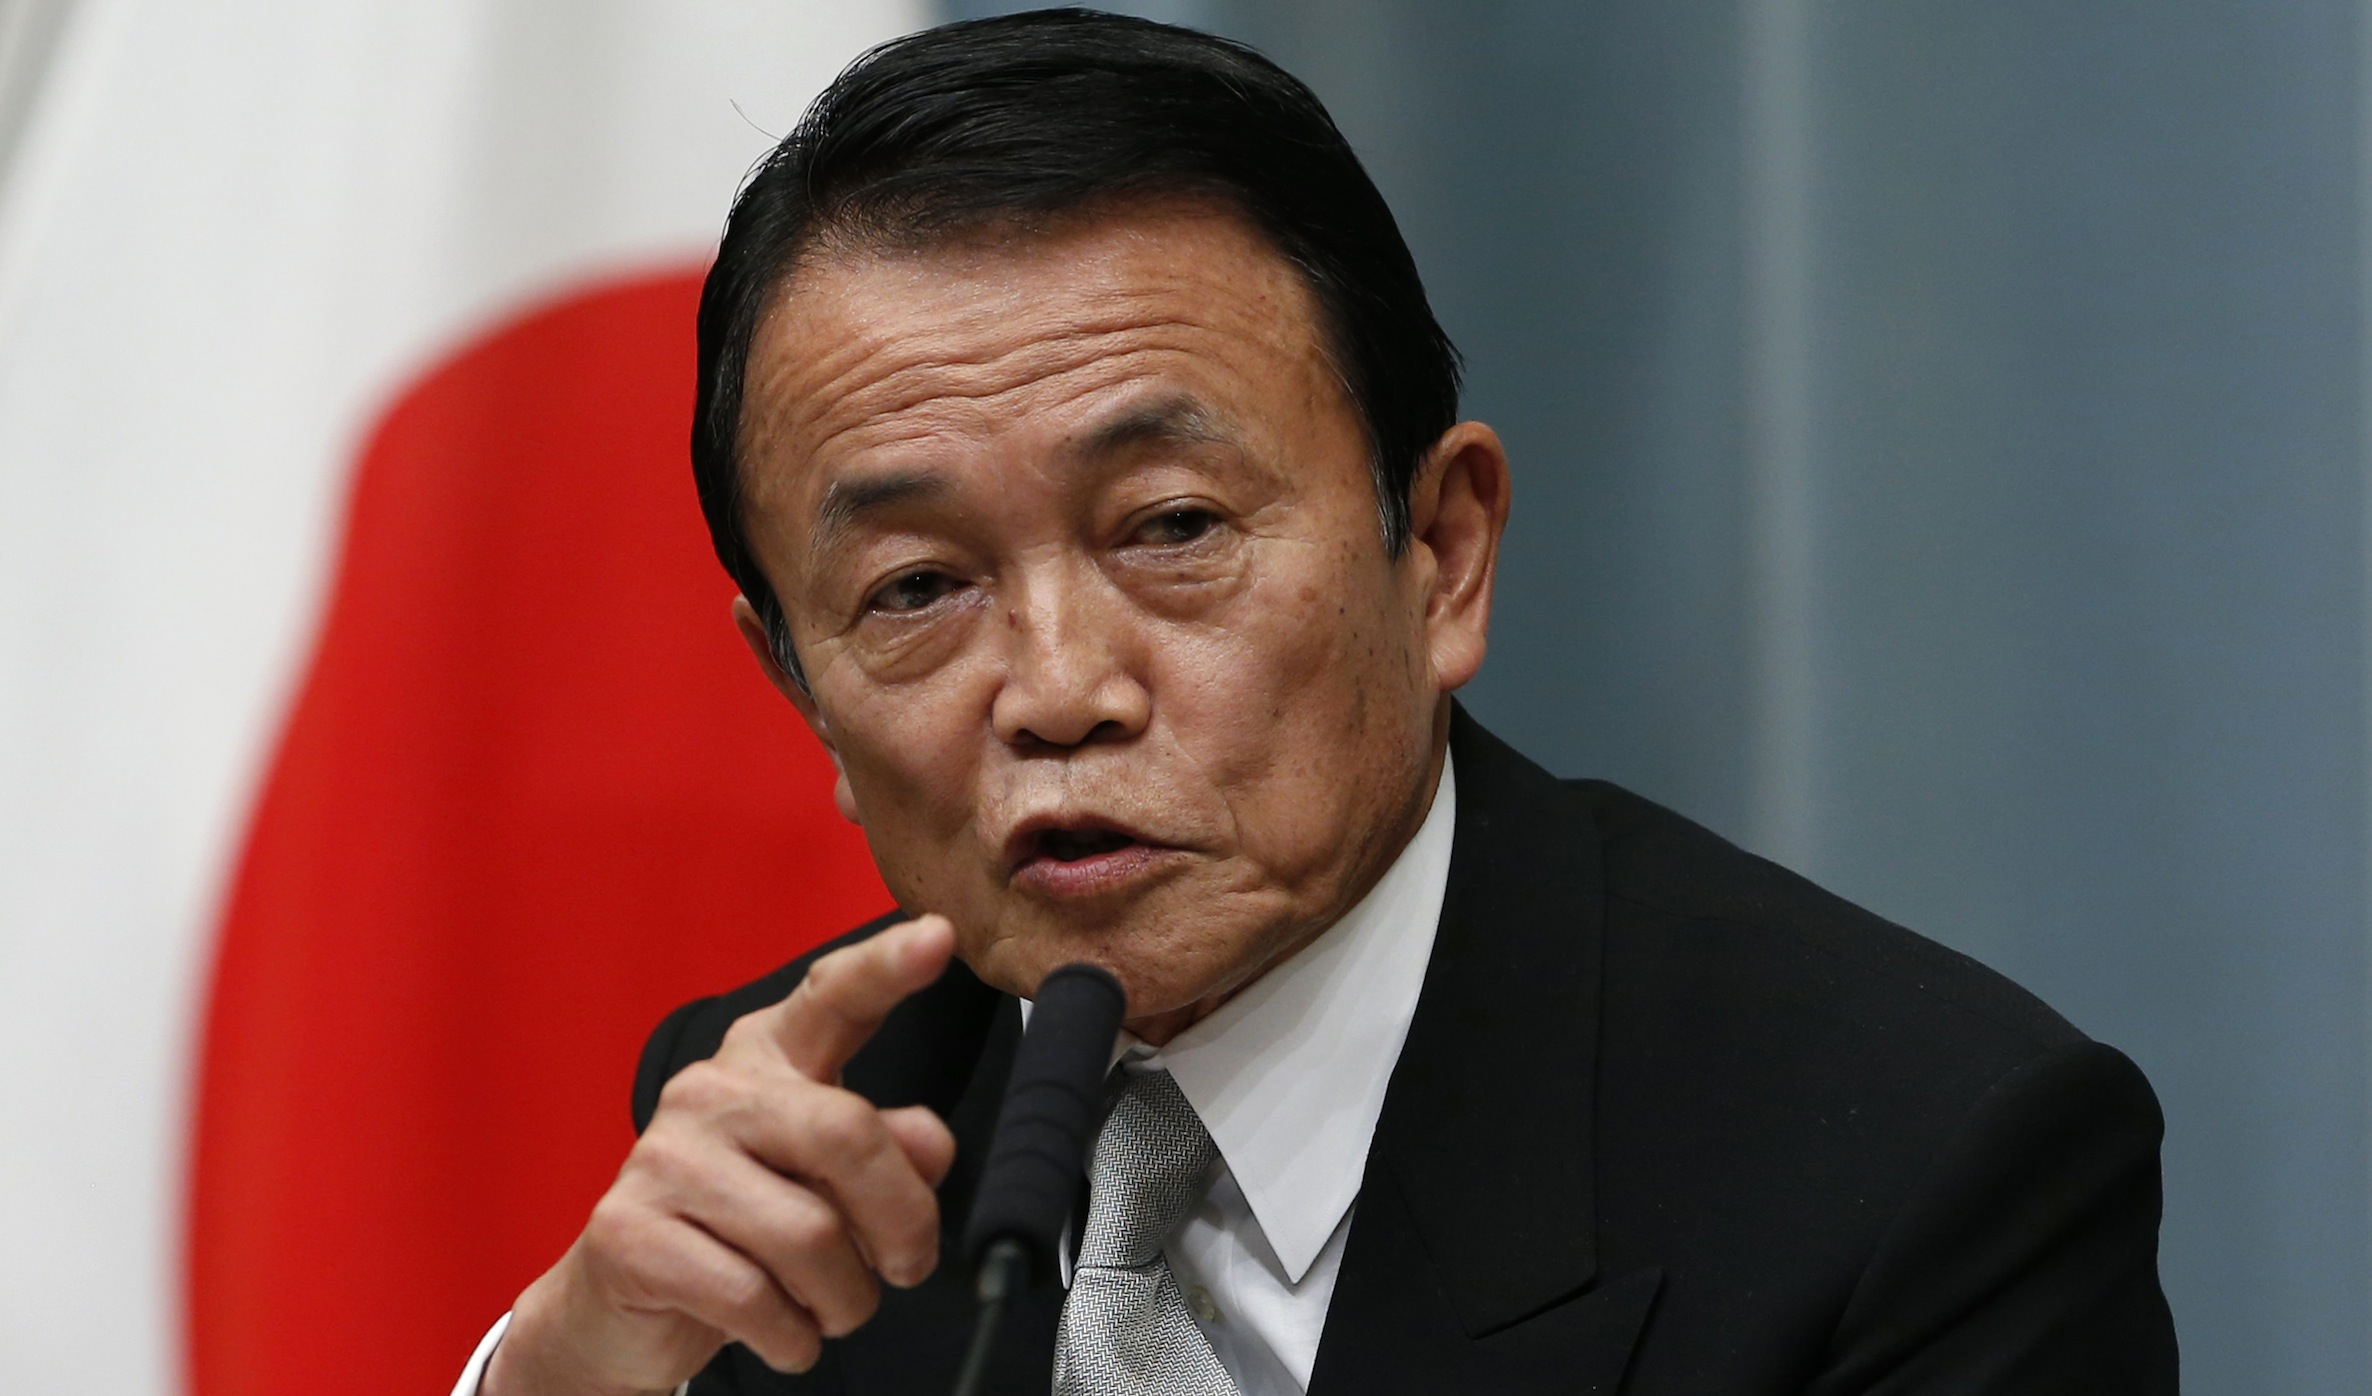 Taro Aso speaks at the prime minister's official residence in Tokyo, Wednesday, Dec. 26, 2012.